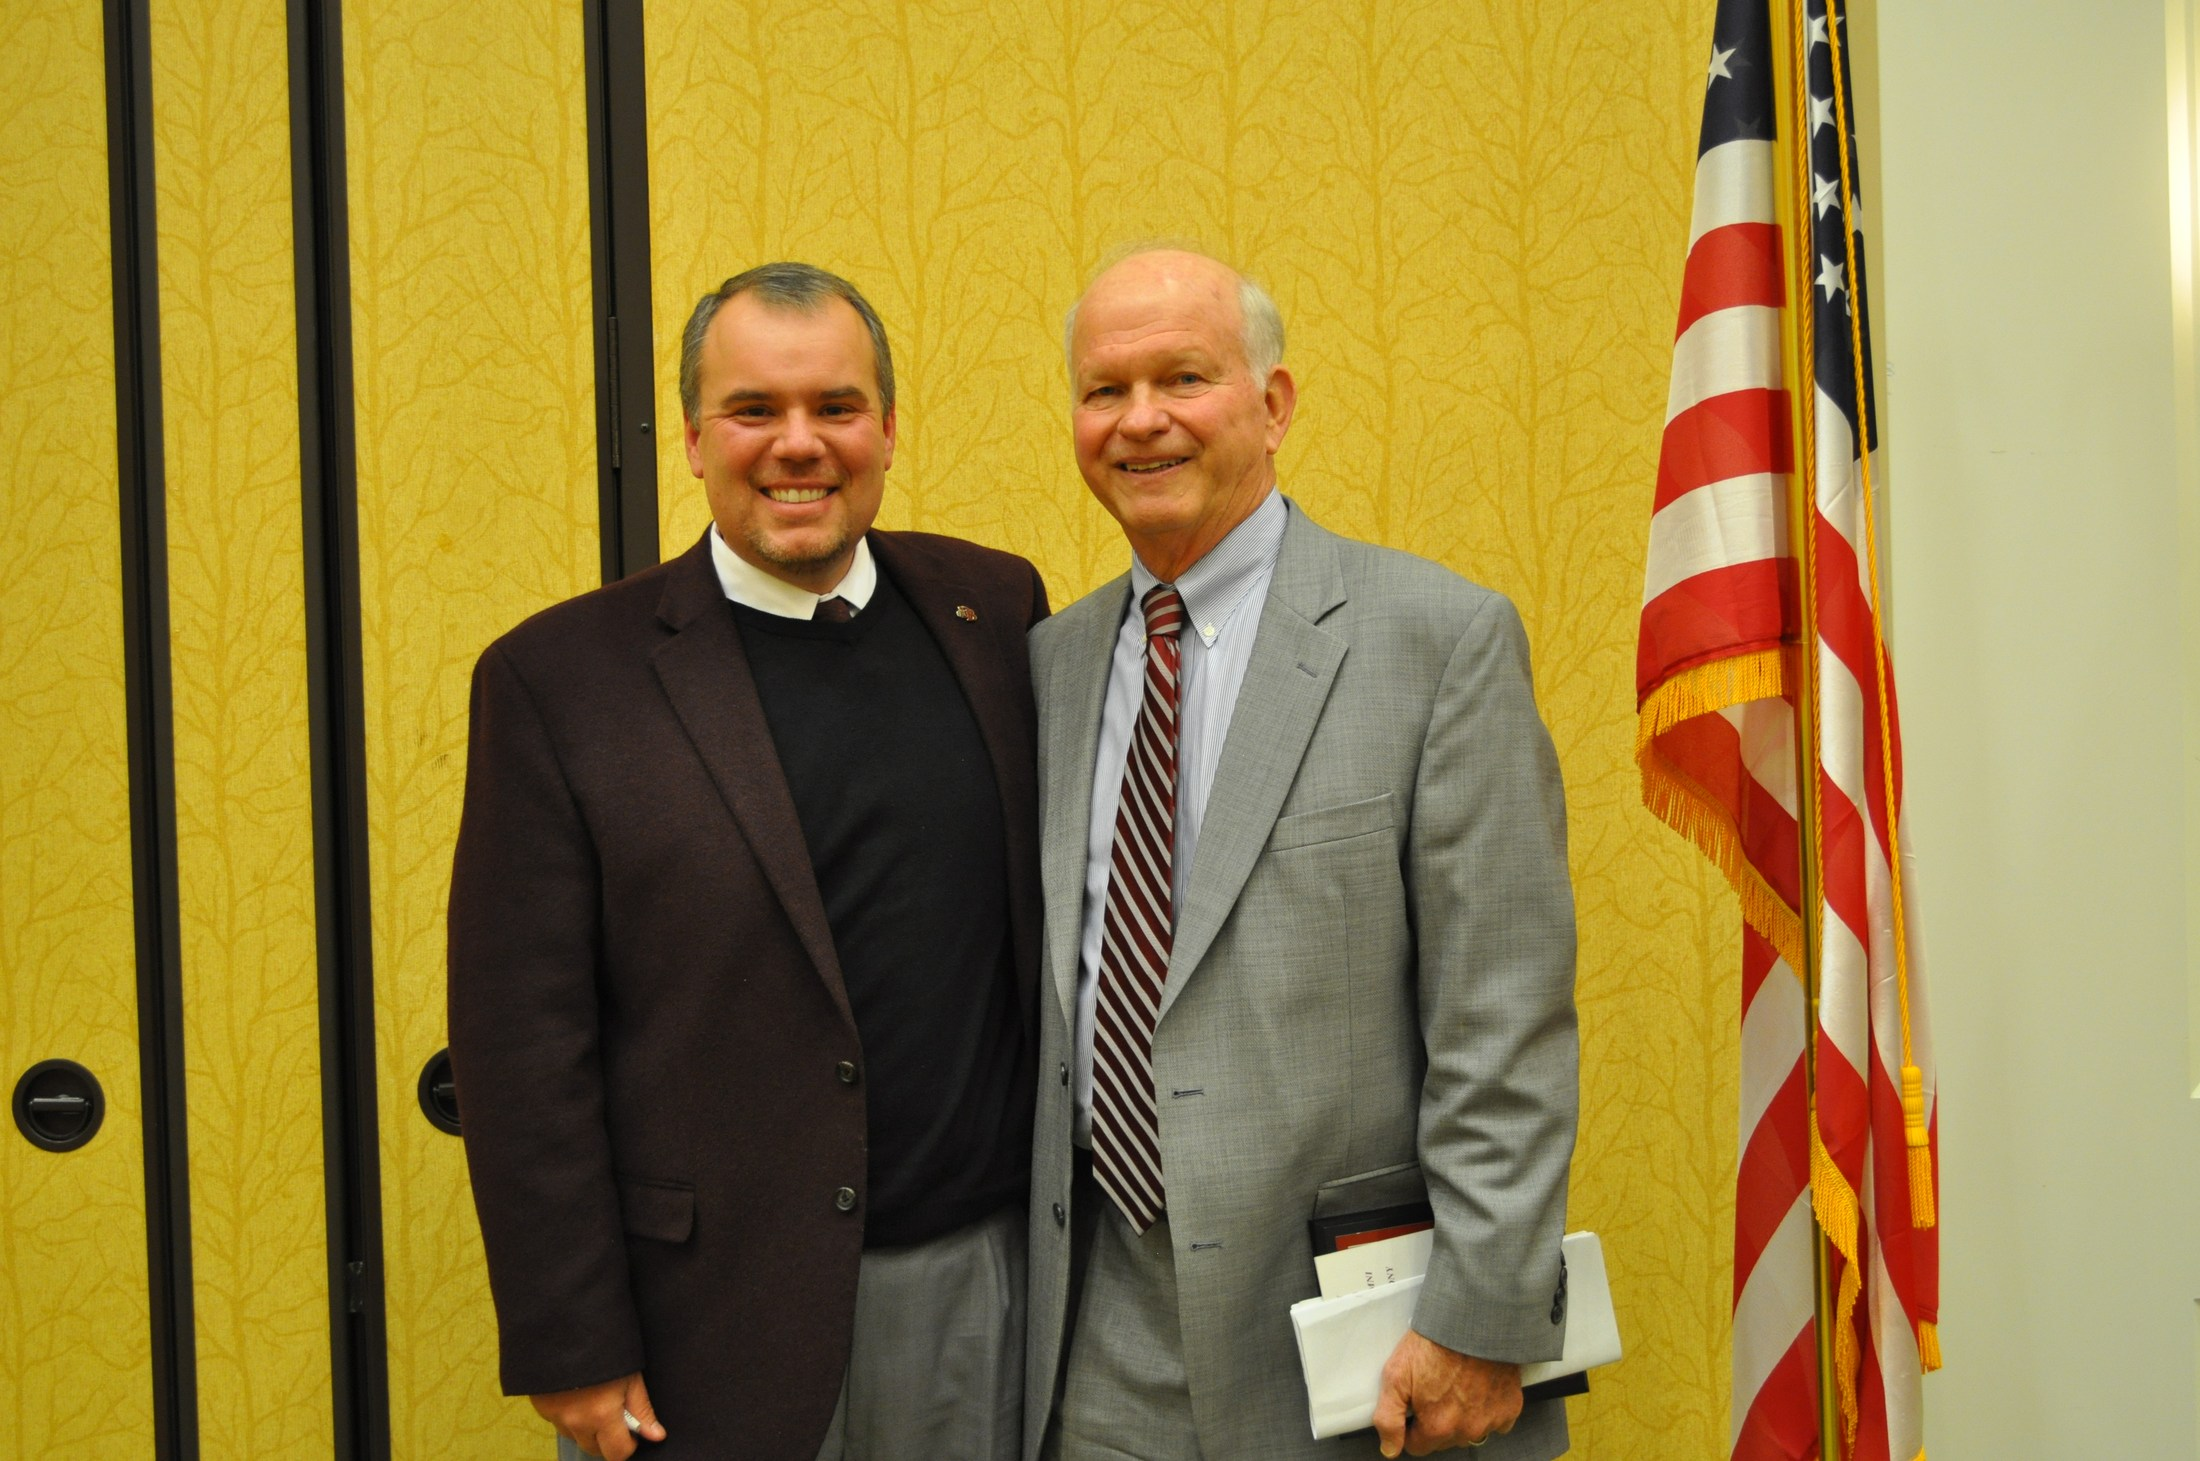 2014 Induction Ceremony: William Earl Lovelace with Dr. Chris Hampton